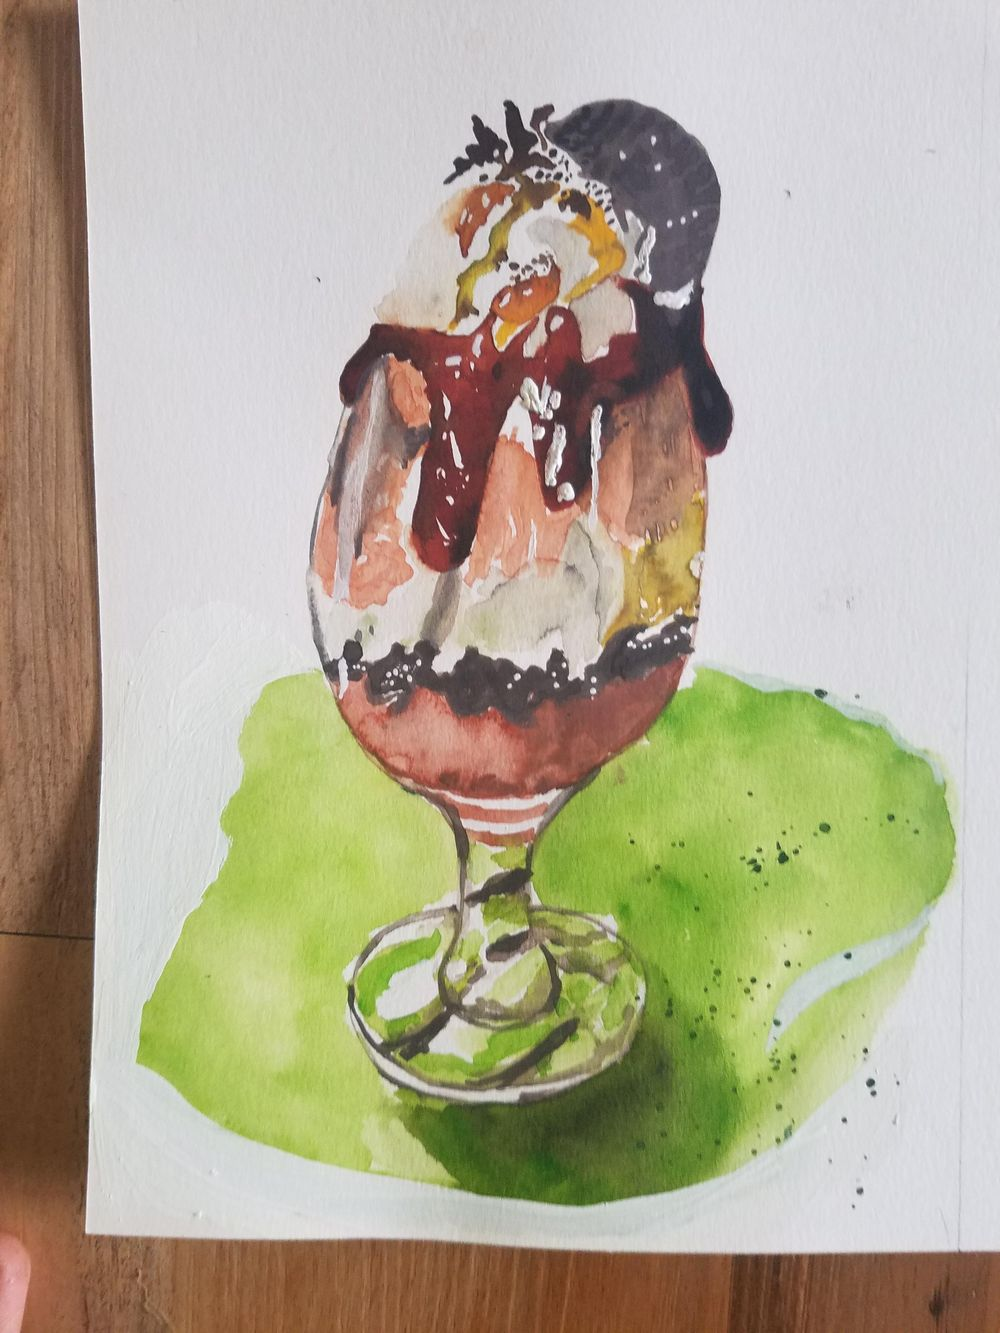 Food Illustrations - image 2 - student project